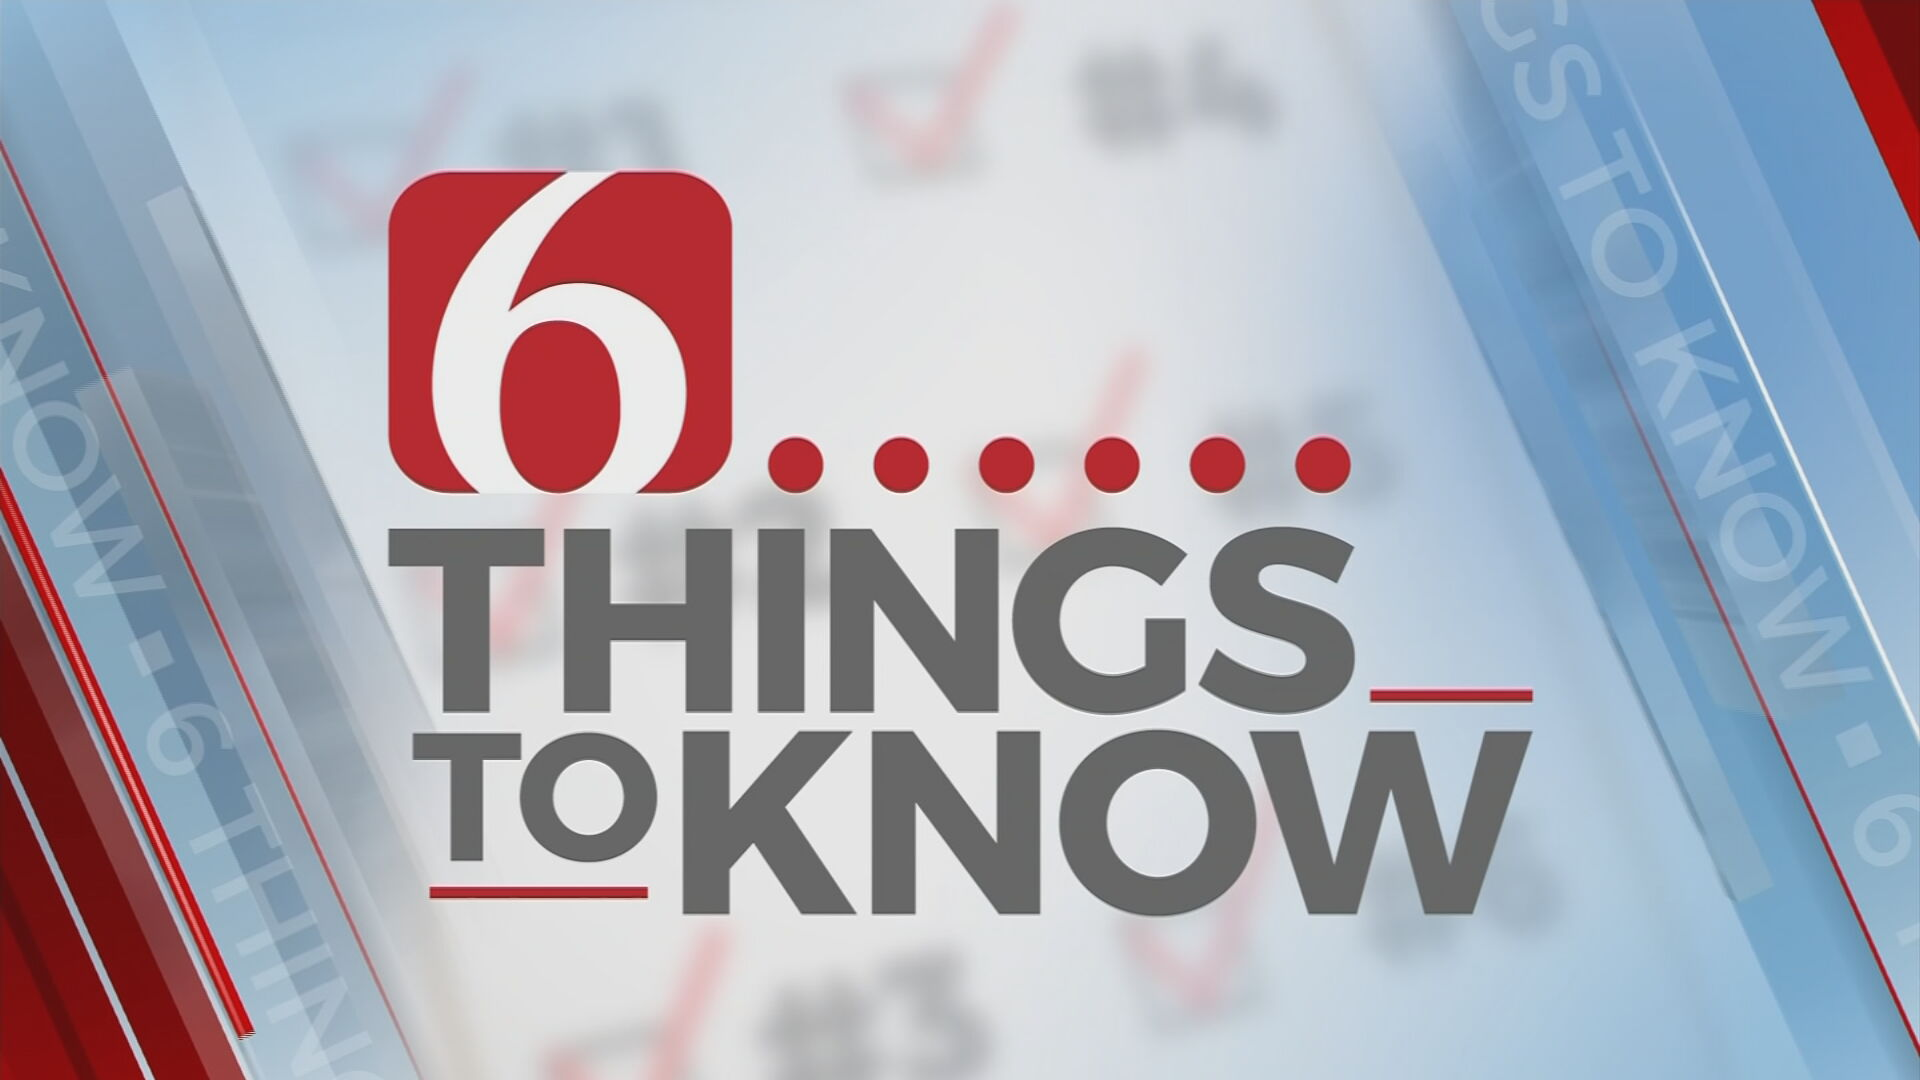 6 Things To Know (Jan 8): Broken Arrow Surplus Auction & Oilers At Home